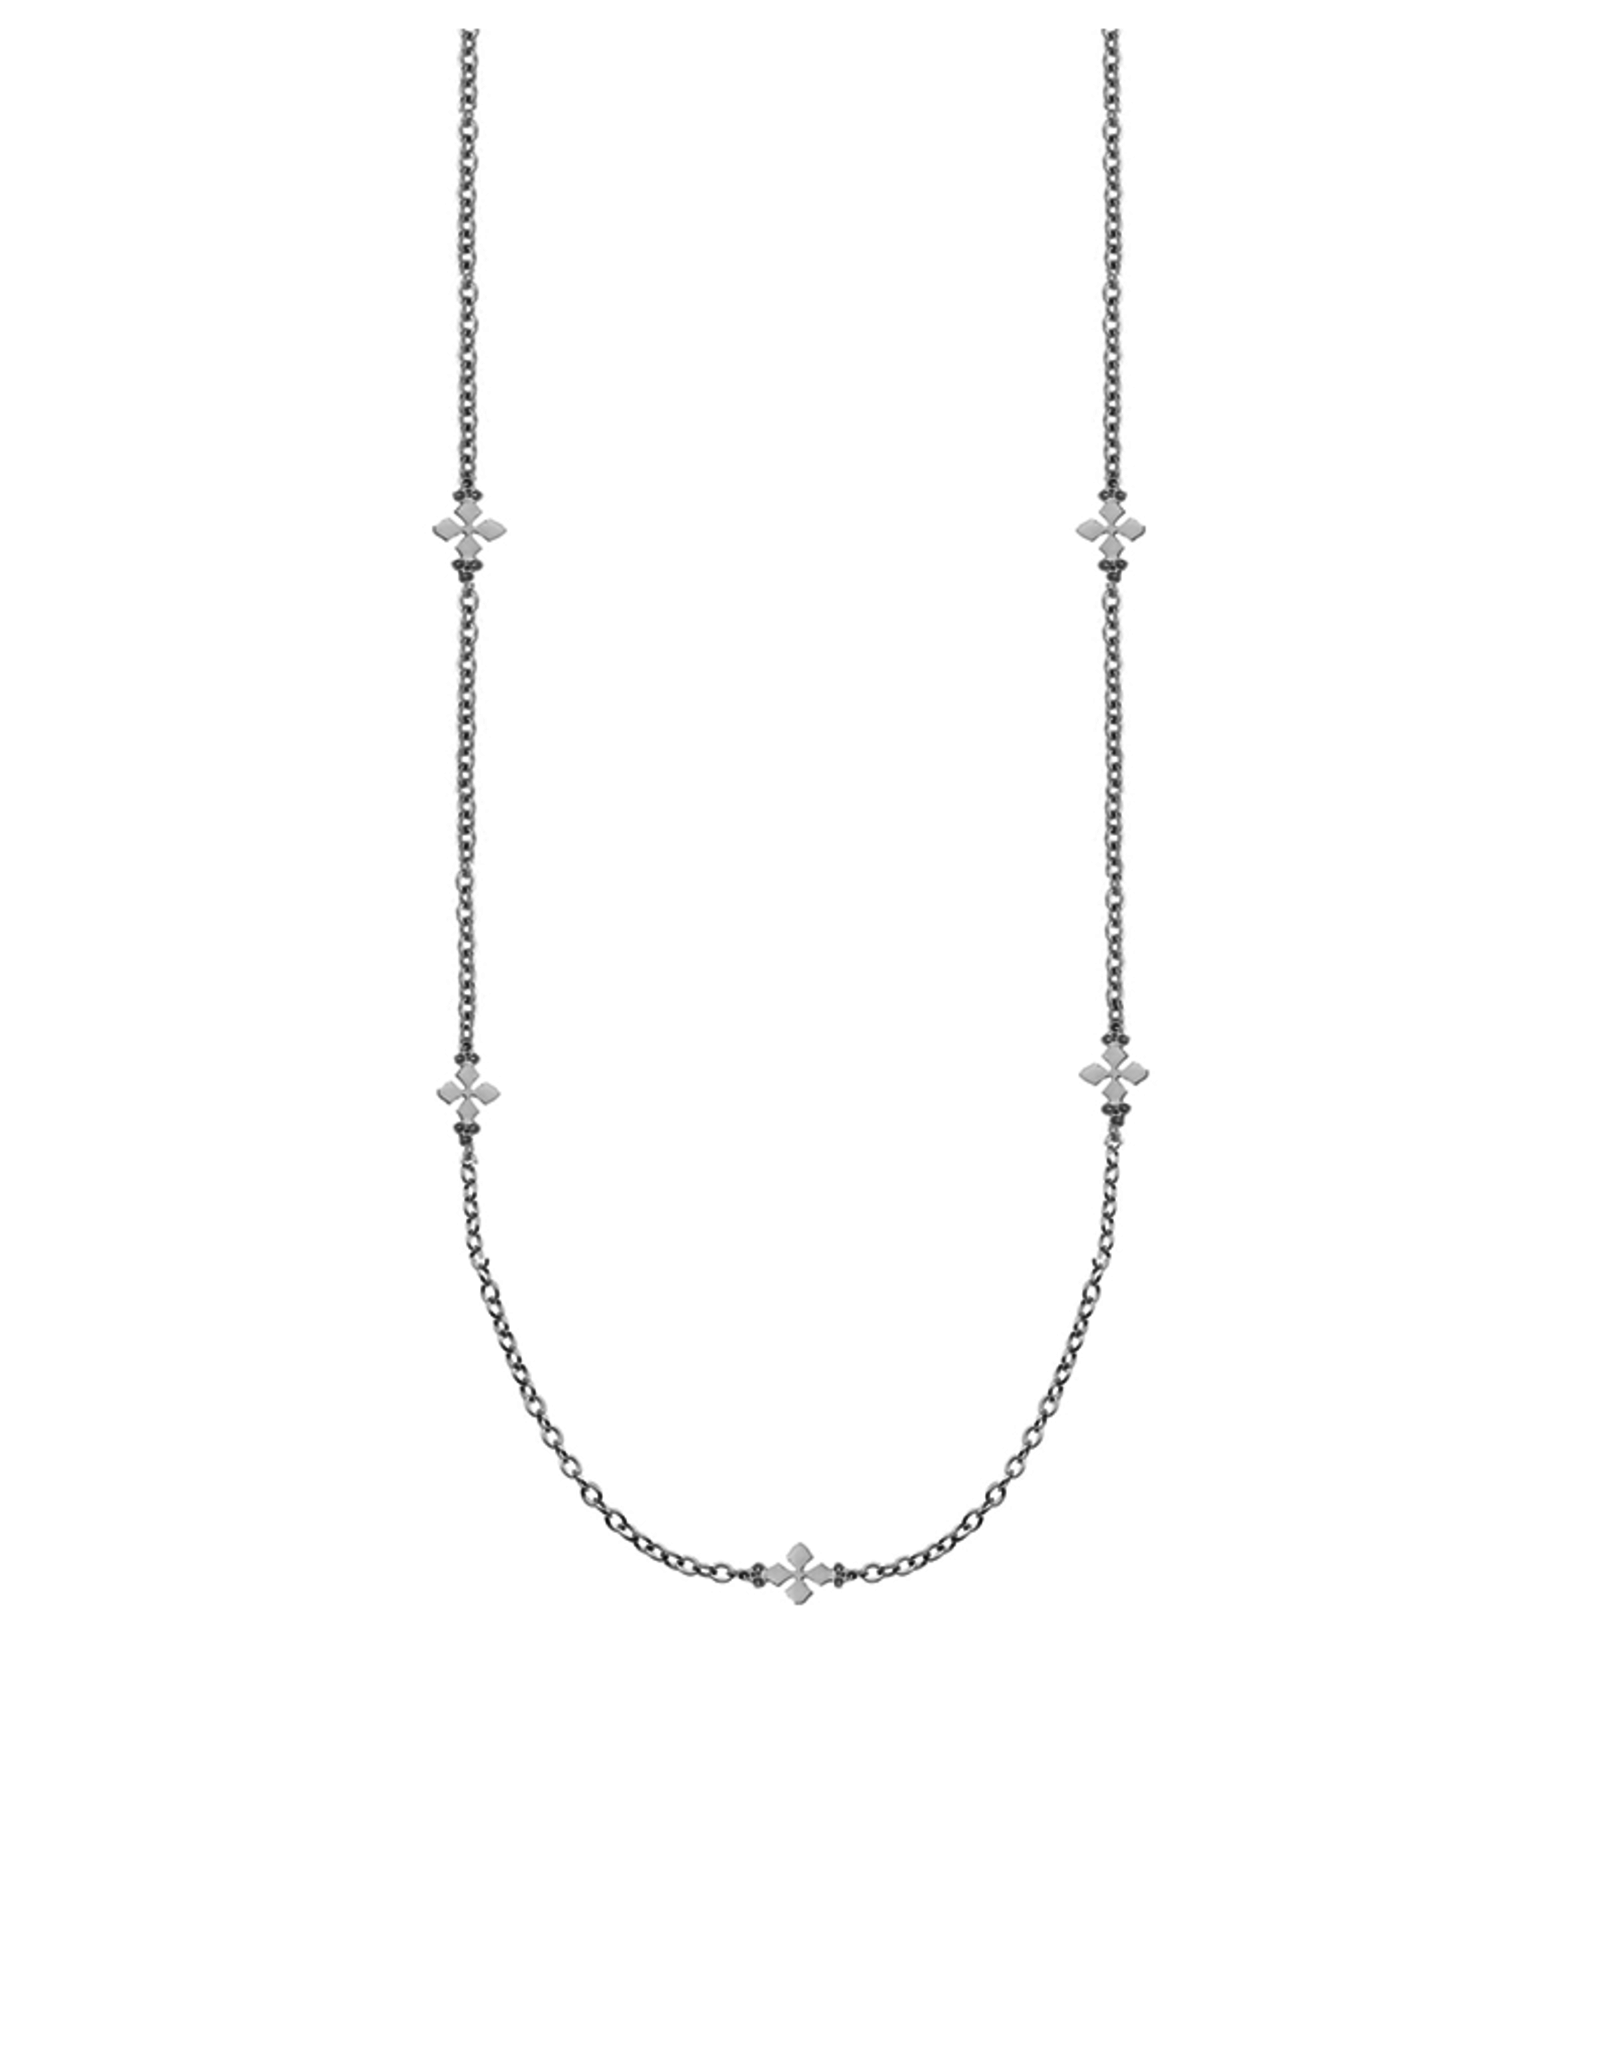 Natalie Wood Designs Believer Long Cross Necklace - Silver